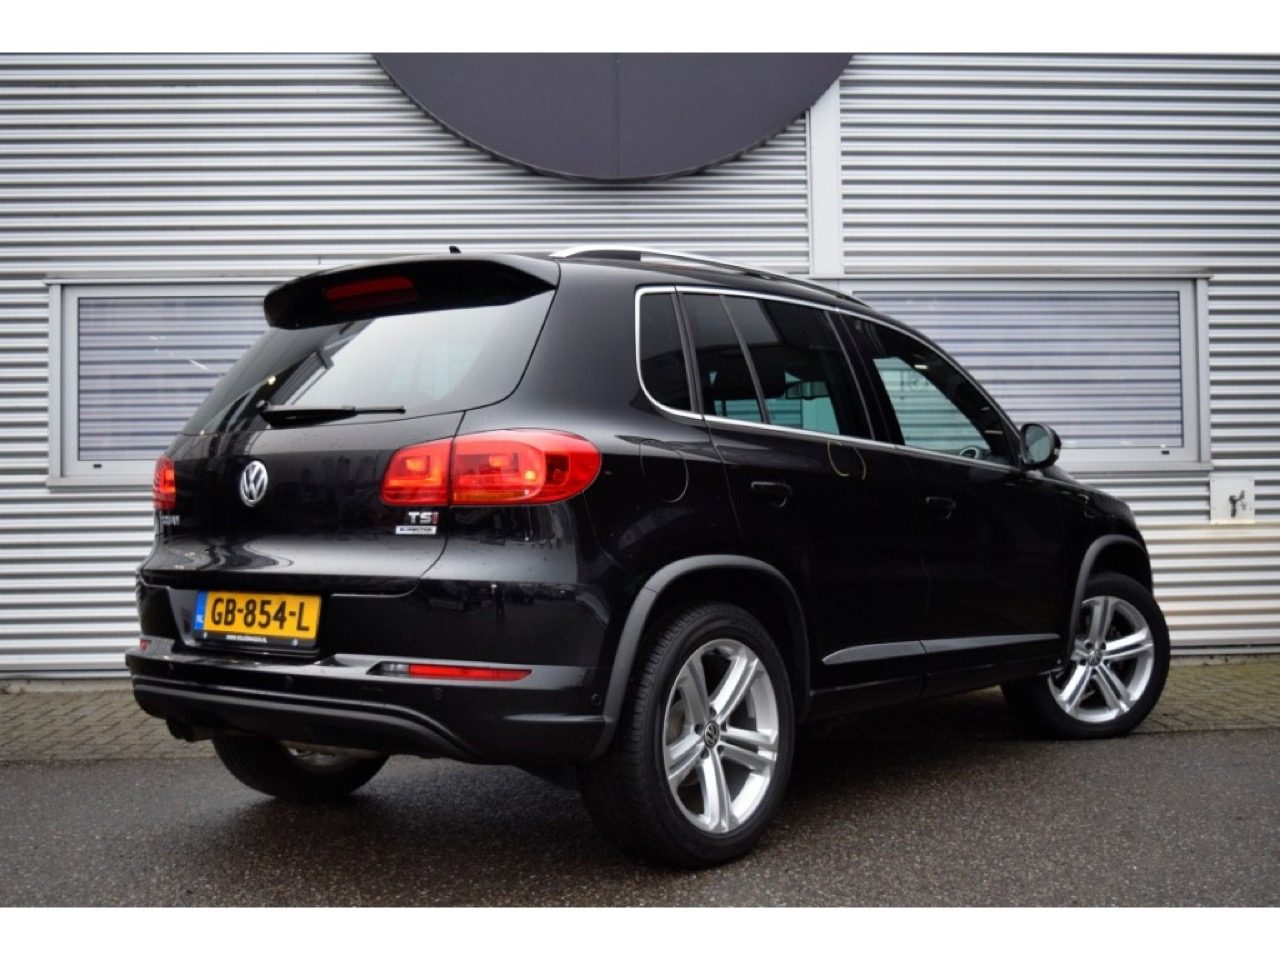 vw tiguan occasion annonces volkswagen tiguan occasion vente voiture volkswagen tiguan occasion. Black Bedroom Furniture Sets. Home Design Ideas